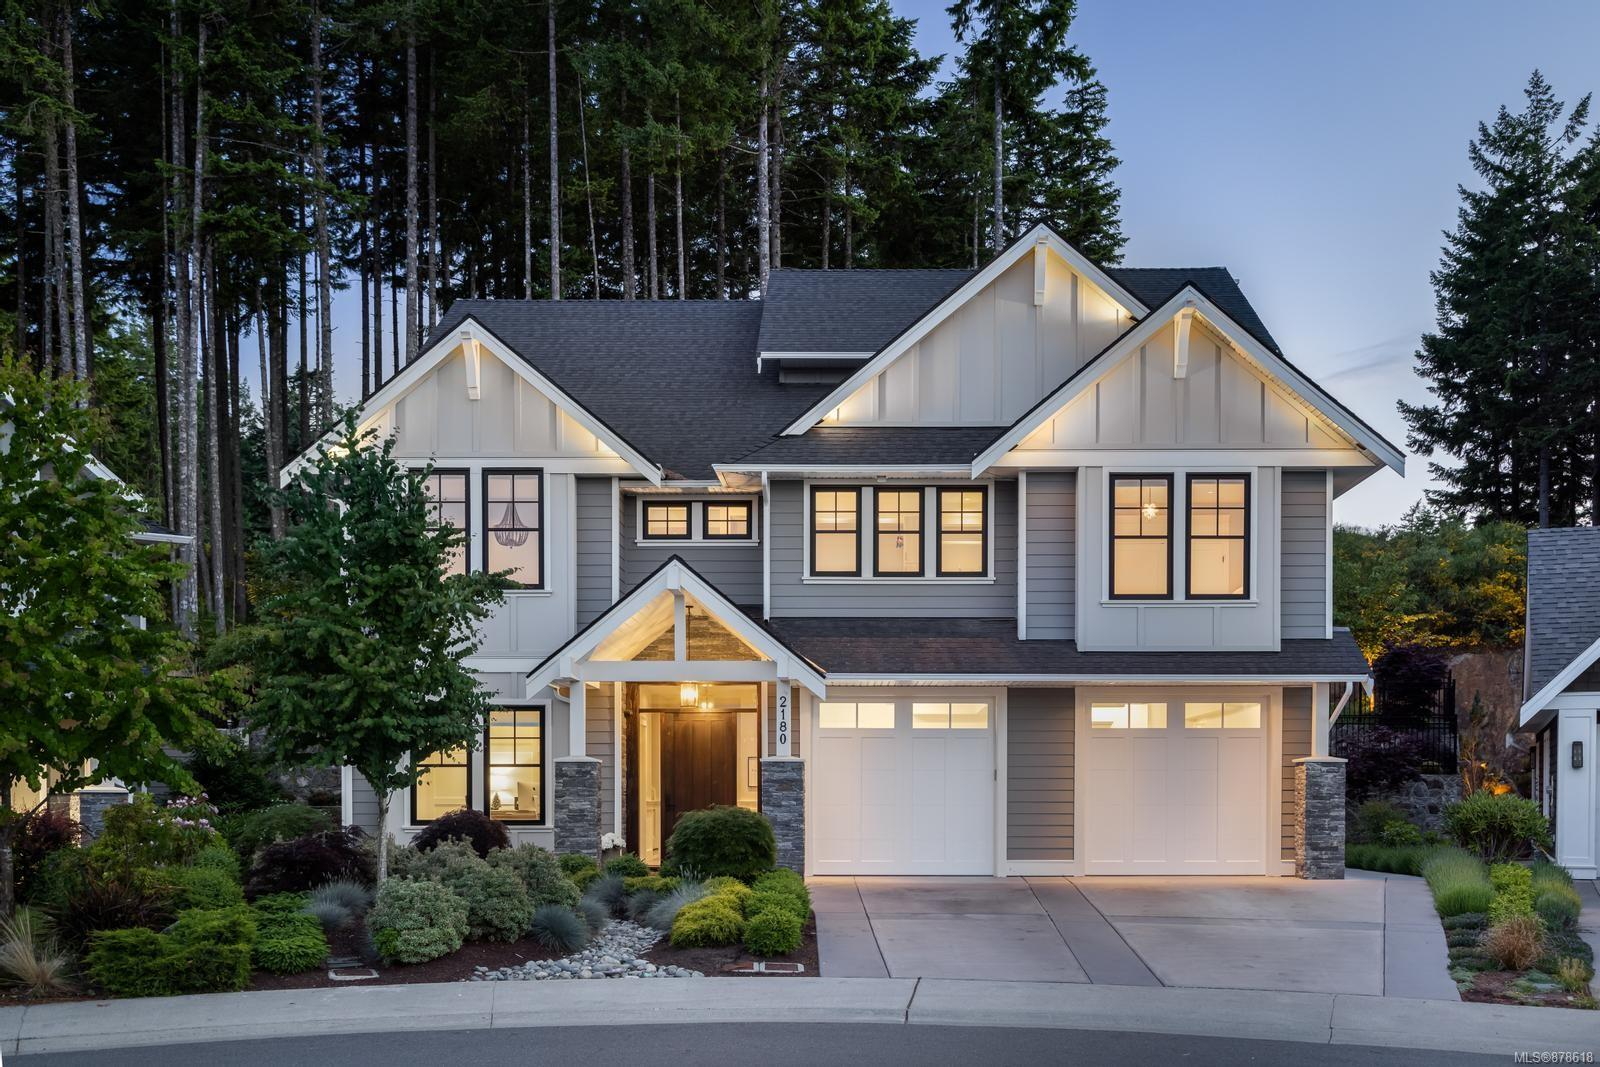 """Exceptional custom home located in one of Bear Mountain Resorts' most desirable neighbourhoods.Offering 5 beds/4baths over 3 levels this beautifully presented home offers fine detail and craftsmanship throughout.The entry level presents a heated tile entrance, a private office, media room with surround sound and bedroom with walk in closet and 3 piece bath. The main level boasts a grand vaulted living room with gas fp, stunning kitchen with 48"""" Decor gas stove, pot filler, walk in pantry with wine wall and dining area. Three additional bedrooms, a 5 piece bath and spacious laundry room.The private upper floor features the primary bedroom with a post and beam ceiling, oversized walk in dressing room and a 5 piece spa like bath. Enjoy entertaining on the sprawling outdoor patio complete with covered dining, built in fire bowl and a lite up 3 hole putting green. Don't miss the heated garage with finished floors, separate storage room and a full mechanical room. GOLF MEMBERSHIP INCLUDED!"""